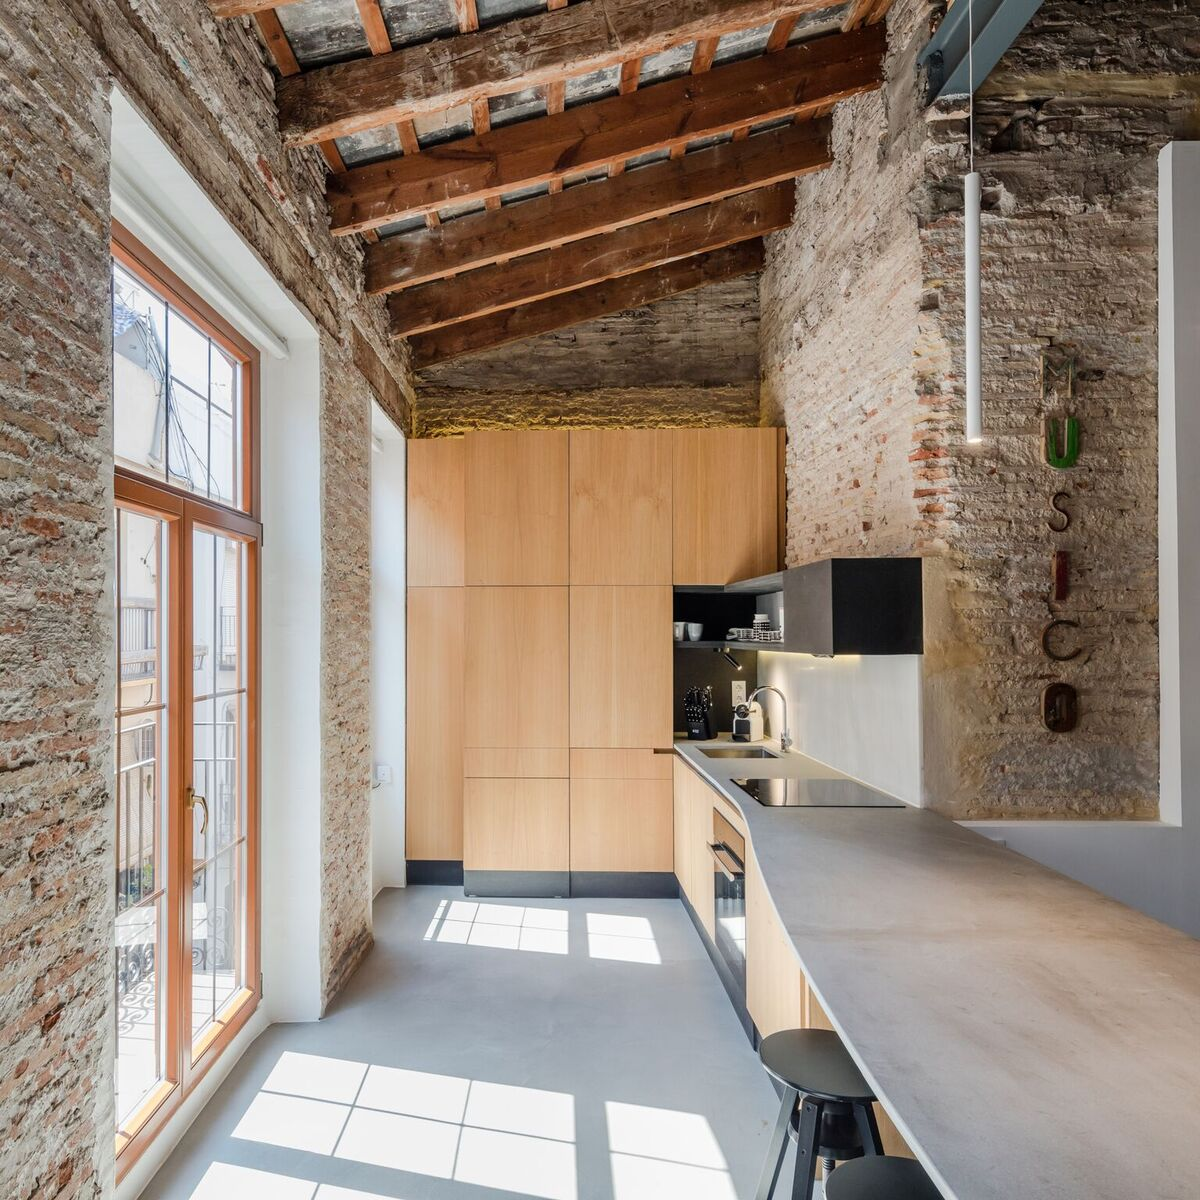 The kitchen is naturally embedded into the space, taking advantage from all the natural light that enters the apartment